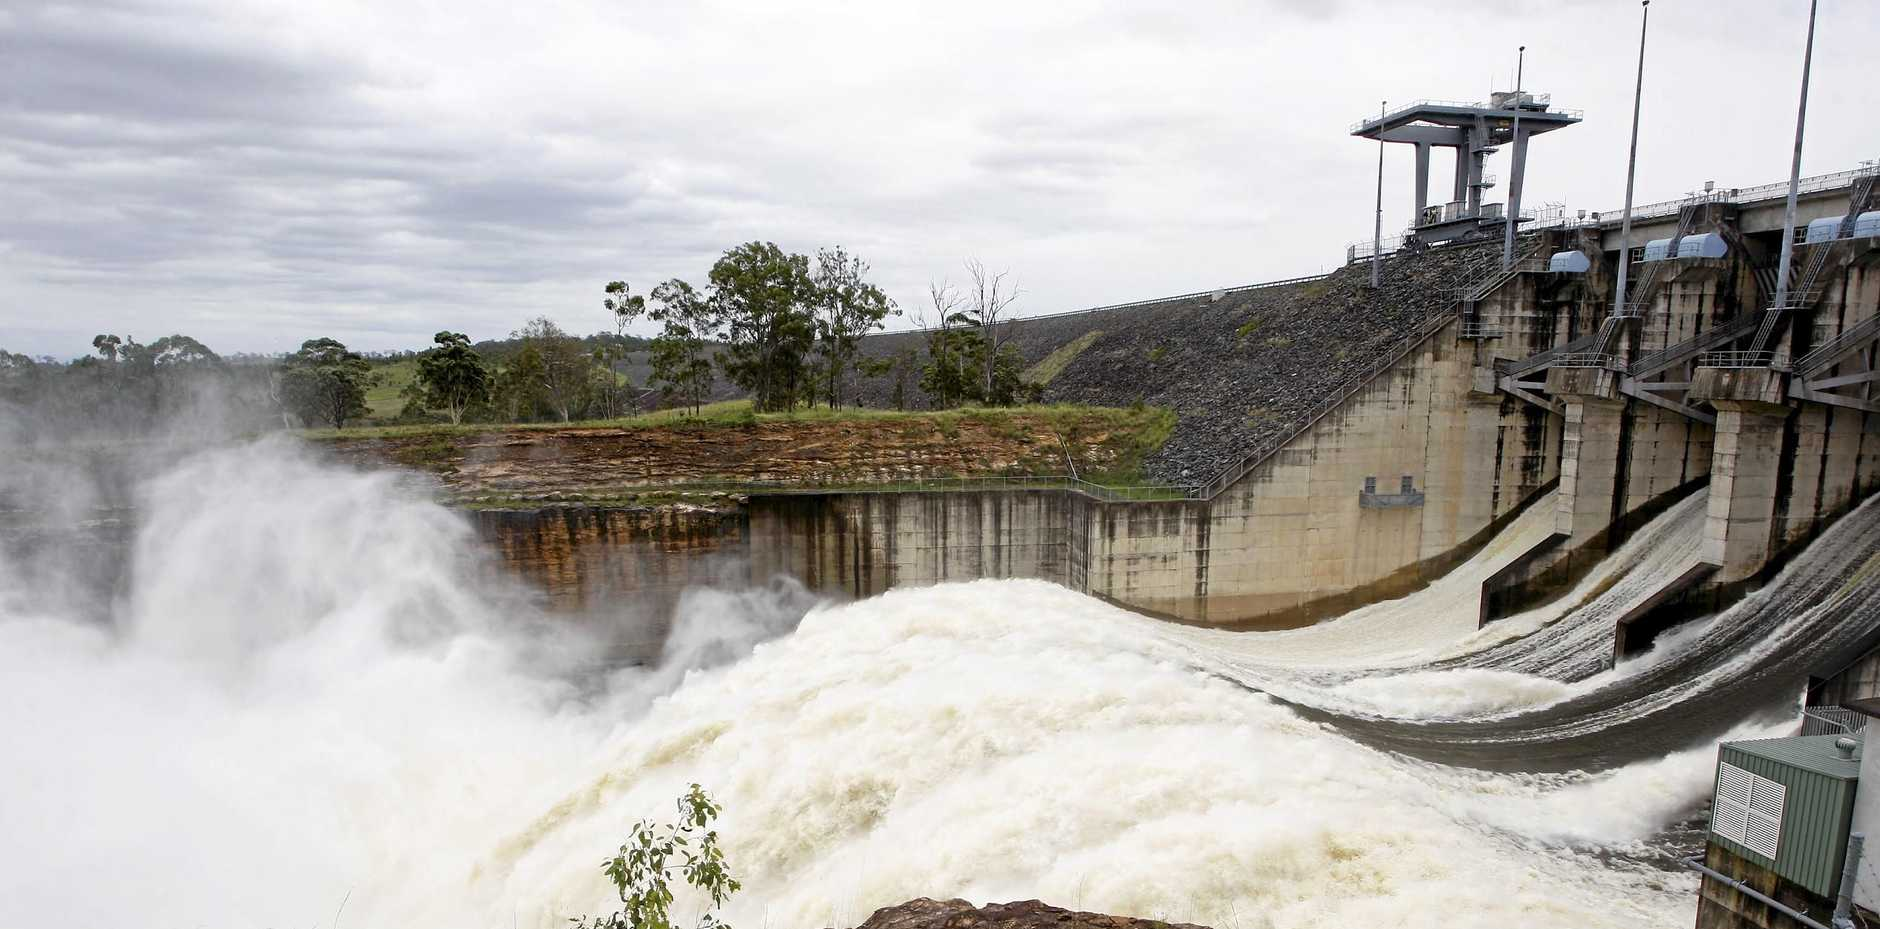 All five spillway gates open at Wivenhoe Dam creating a giant cloud of water spray.